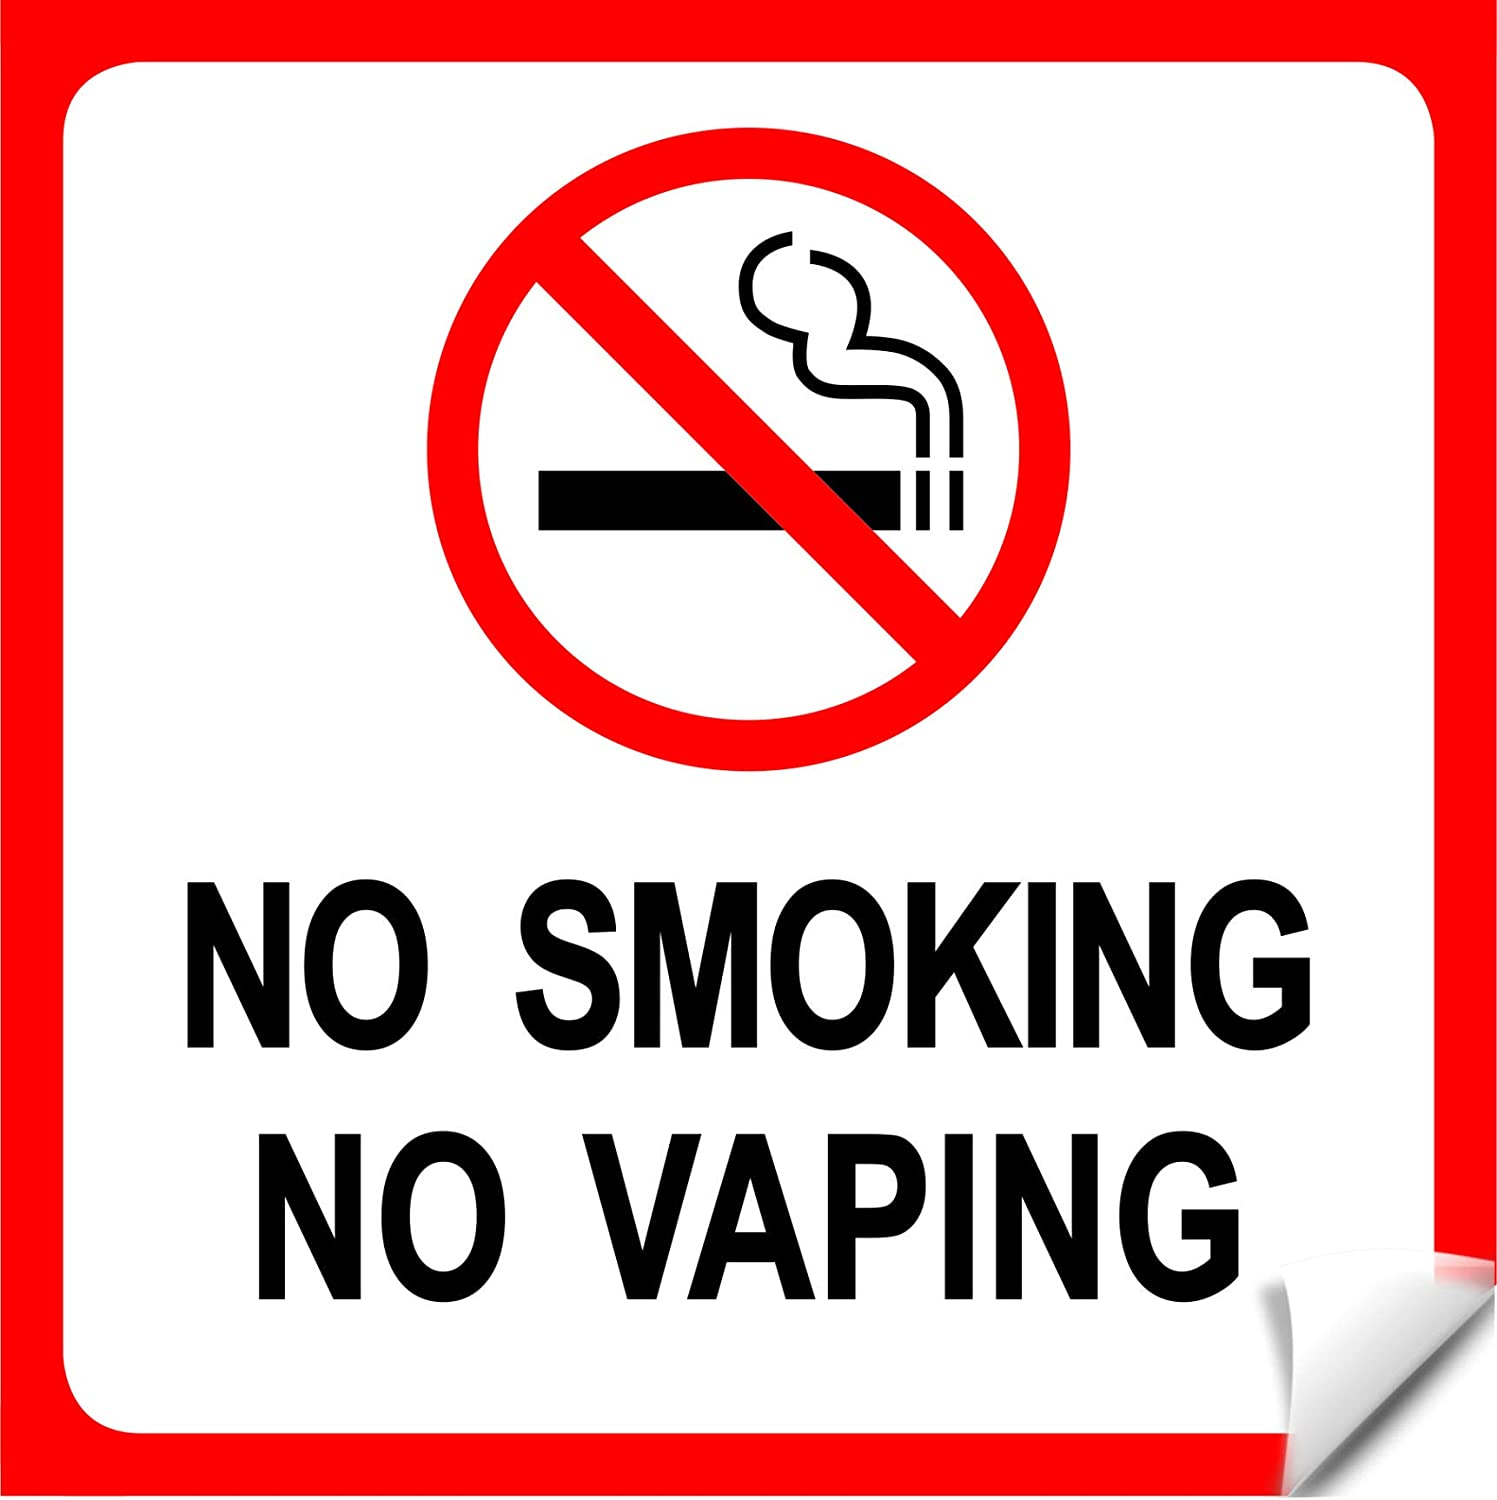 Set Of 8 No Smoking No Vaping Sign Self Adhesive Vinyl Sticker Stop Smoke Or Vaping No Cigarette Logo Large 6 X 6 Inch Red And Black No